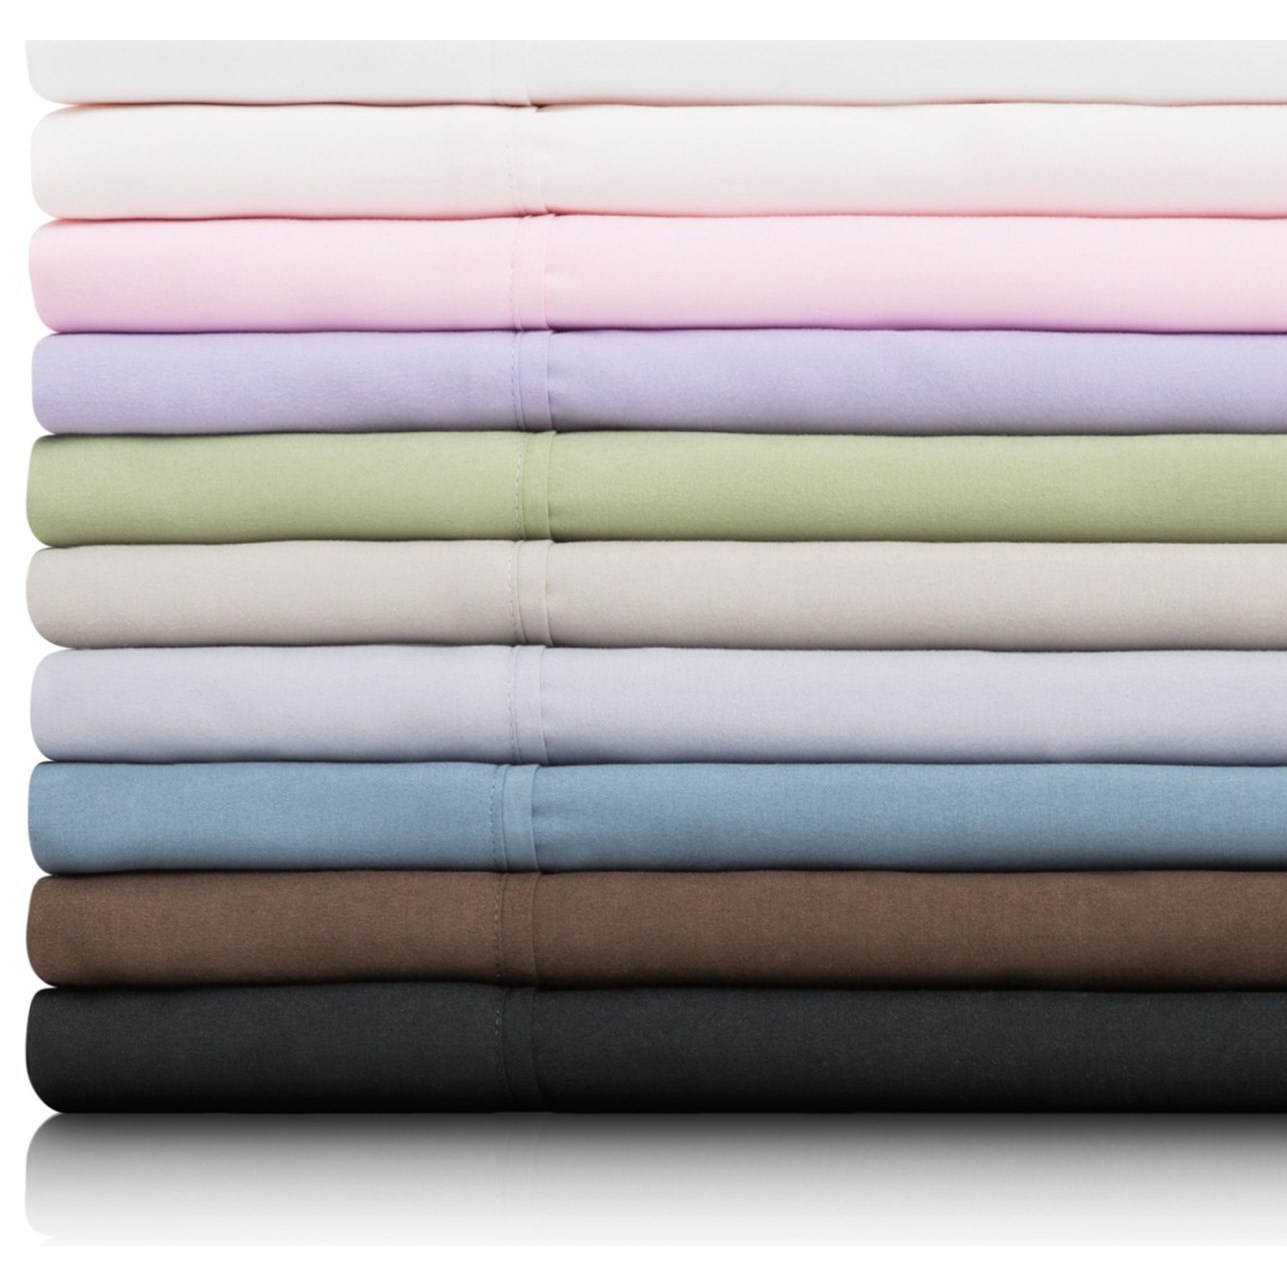 Malouf Brushed Microfiber Cot Woven™ Brushed Microfiber Cot Sheet Set - Item Number: MA90CTBKMS